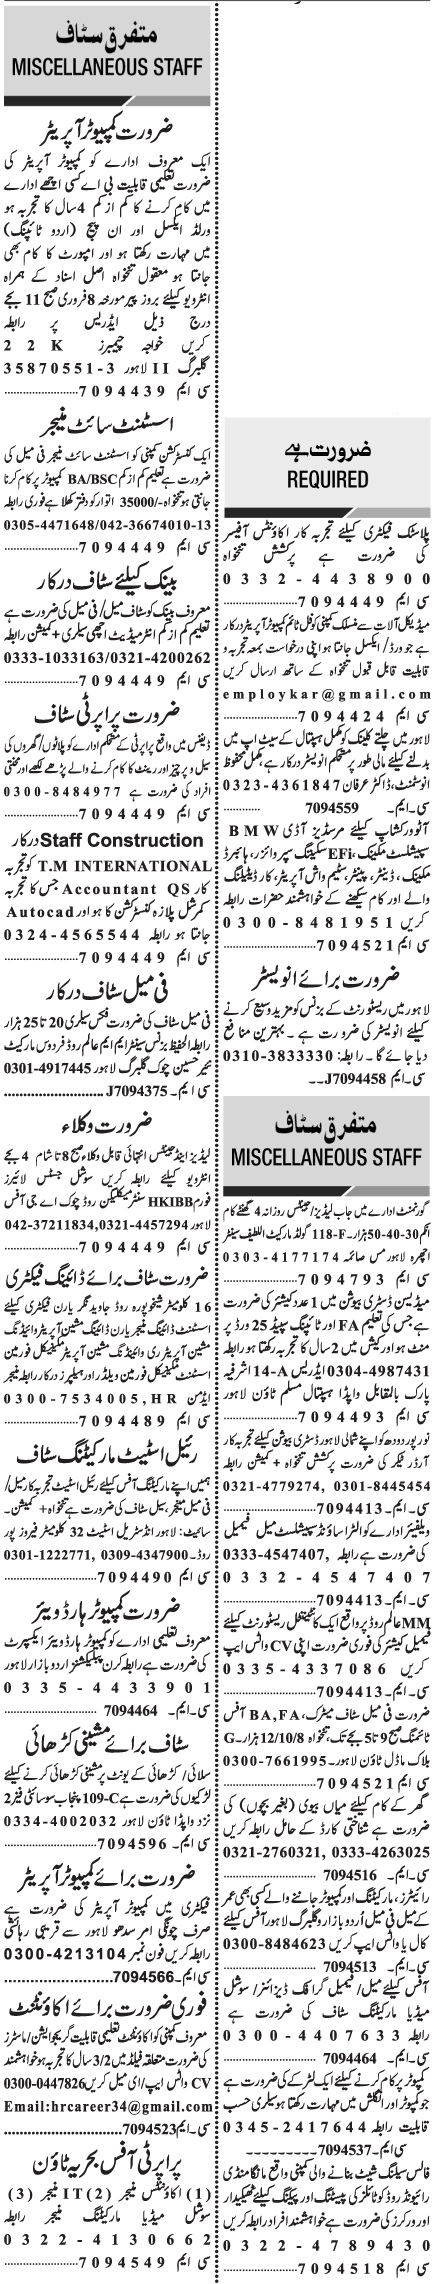 Daily Jang Newspaper Sunday Classified Miscellaneous Jobs Lahore